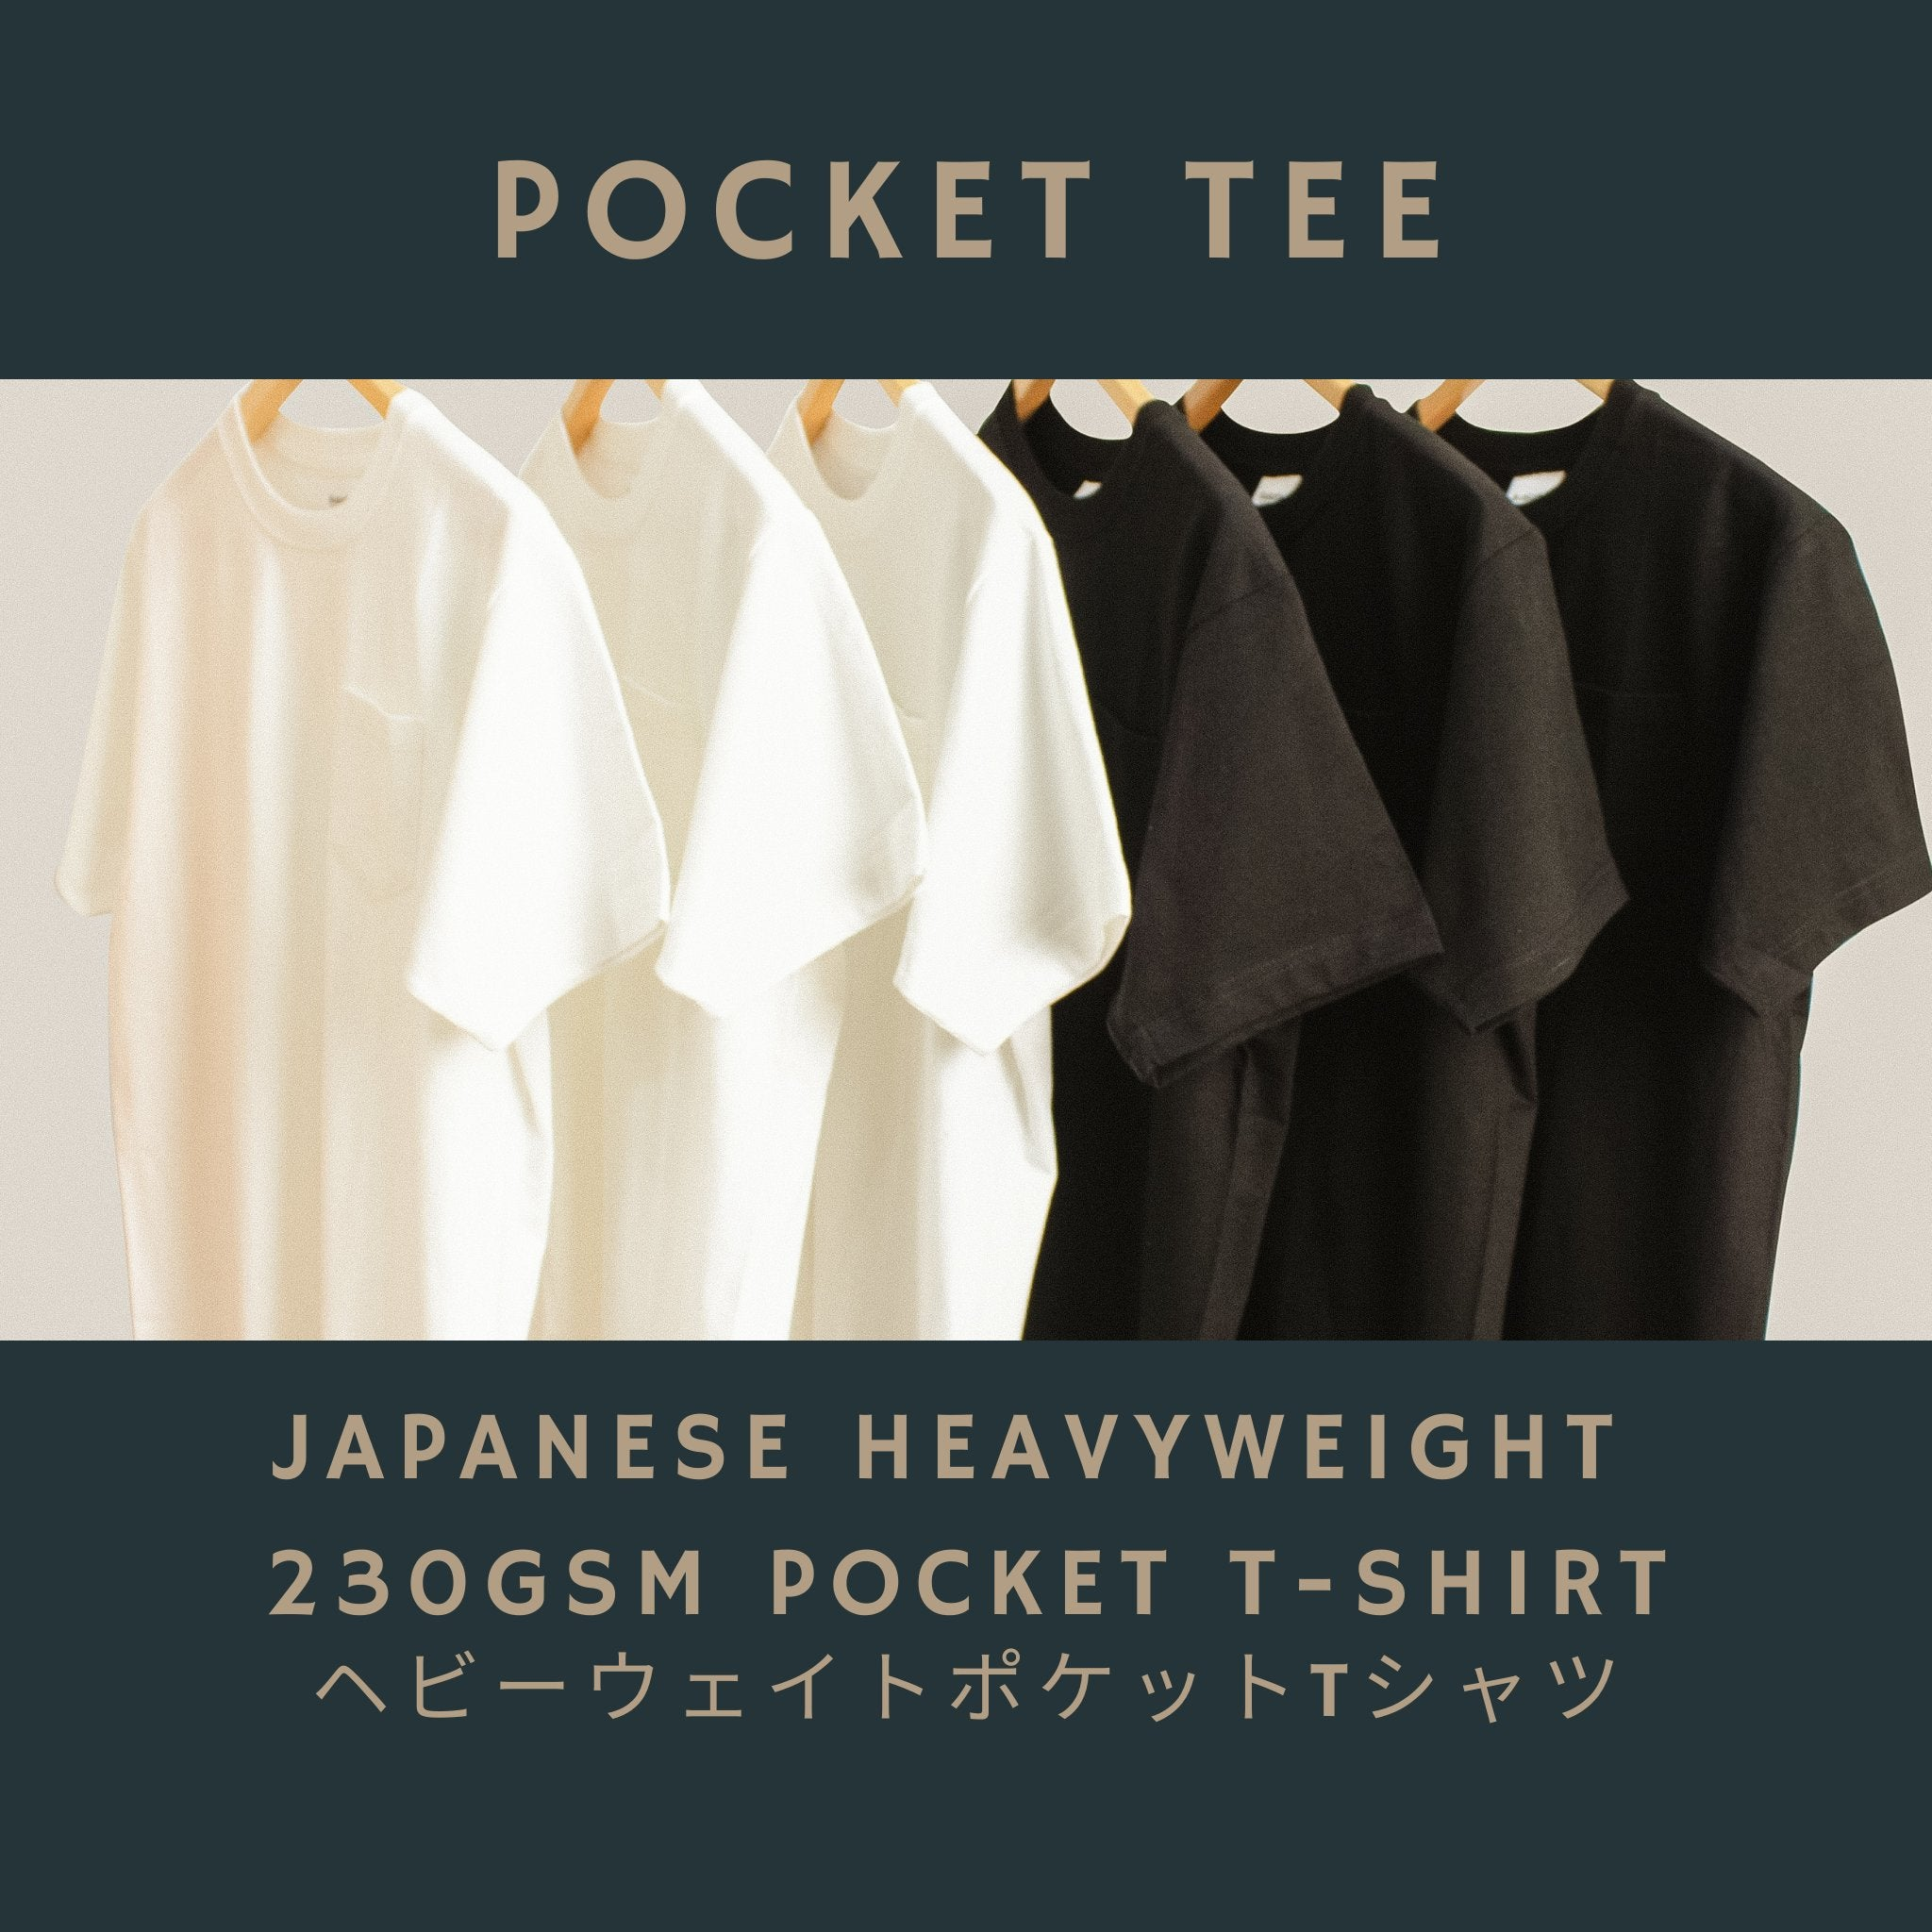 Japanese Heavyweight 230gsm Pocket T-shirt